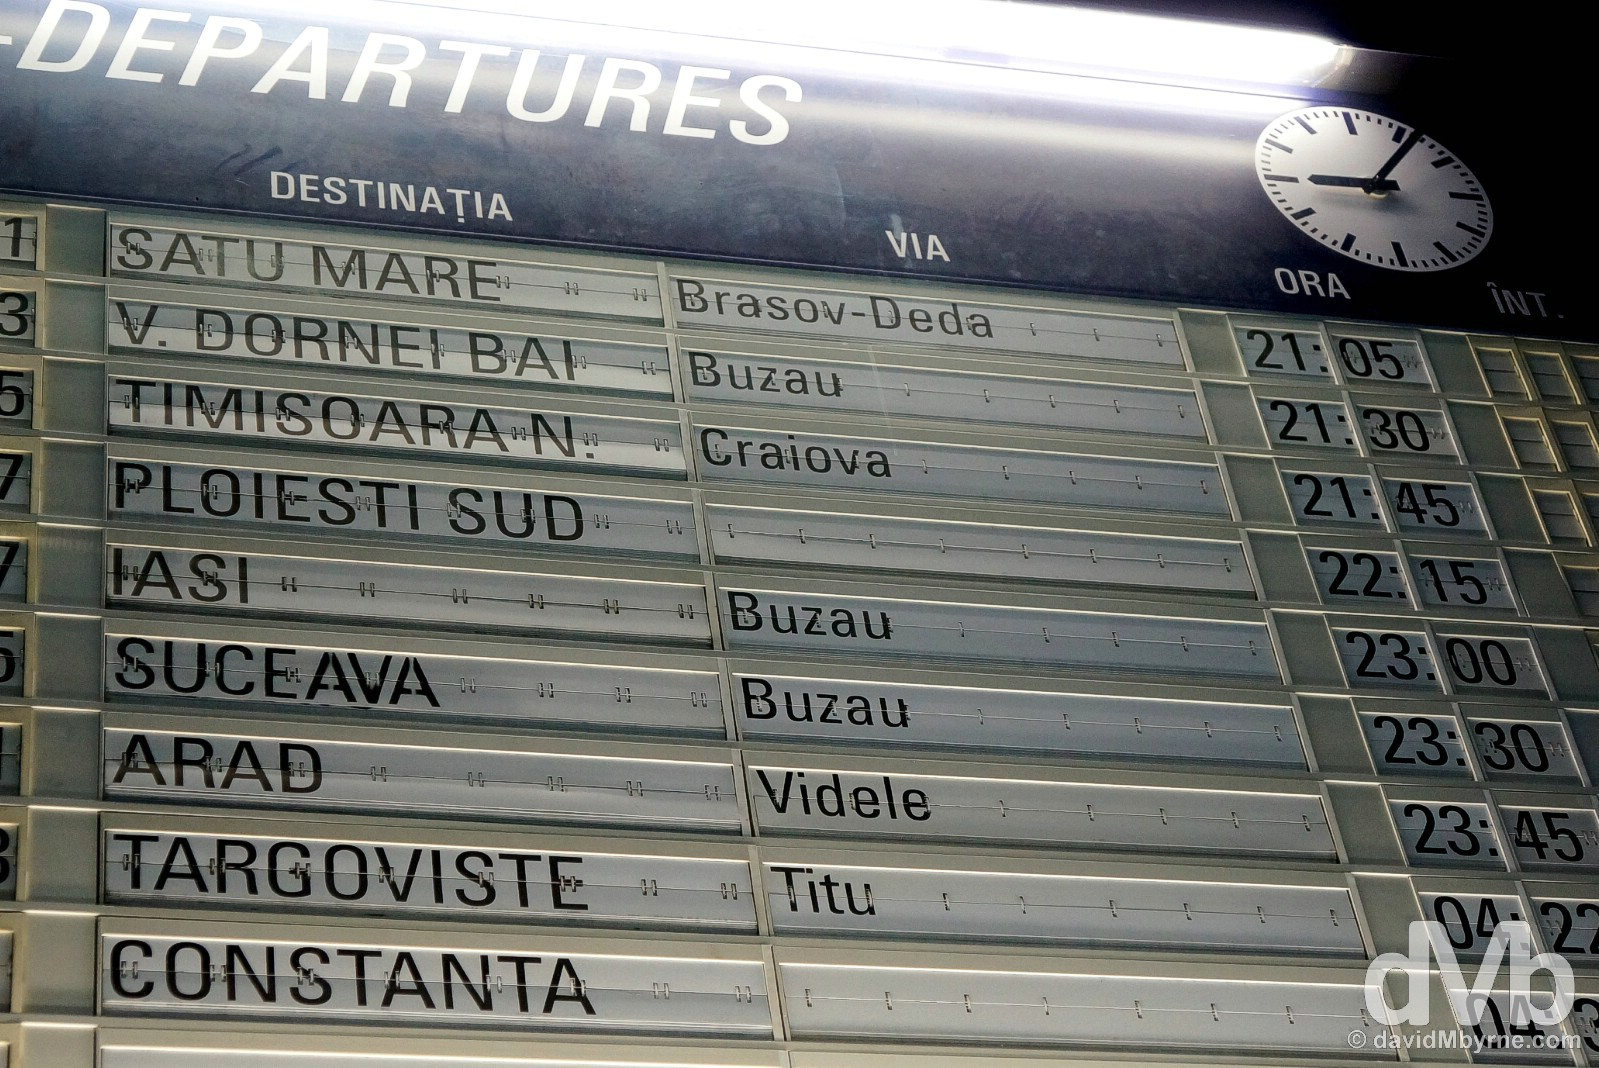 Night train to Belgrade, Serbia. The departures board in Gara de Nord, Bucharest, Romania. April 2, 2015.